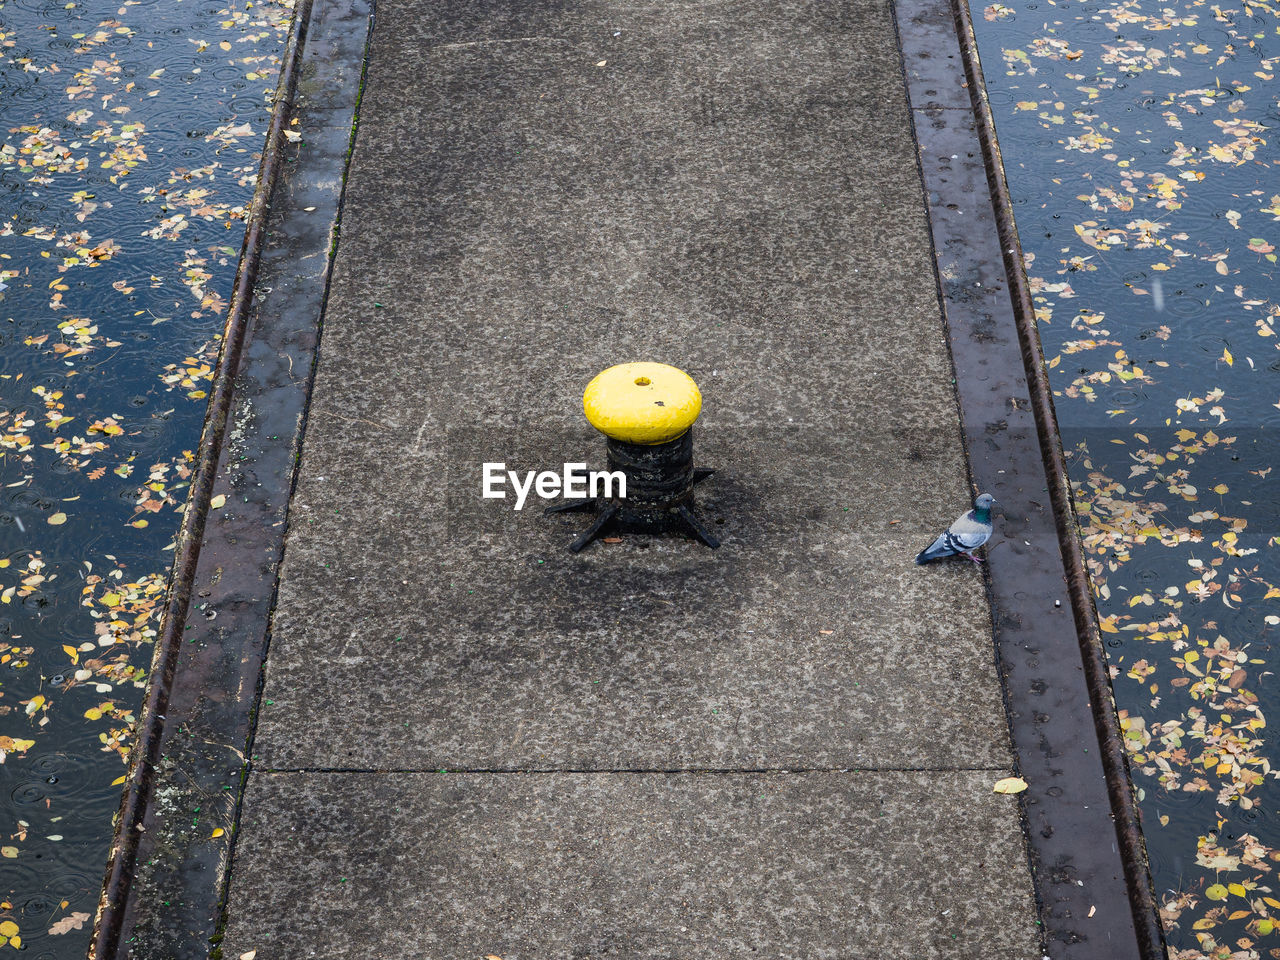 High Angle View Of Yellow Bollard On Urban Footpath During Autumn